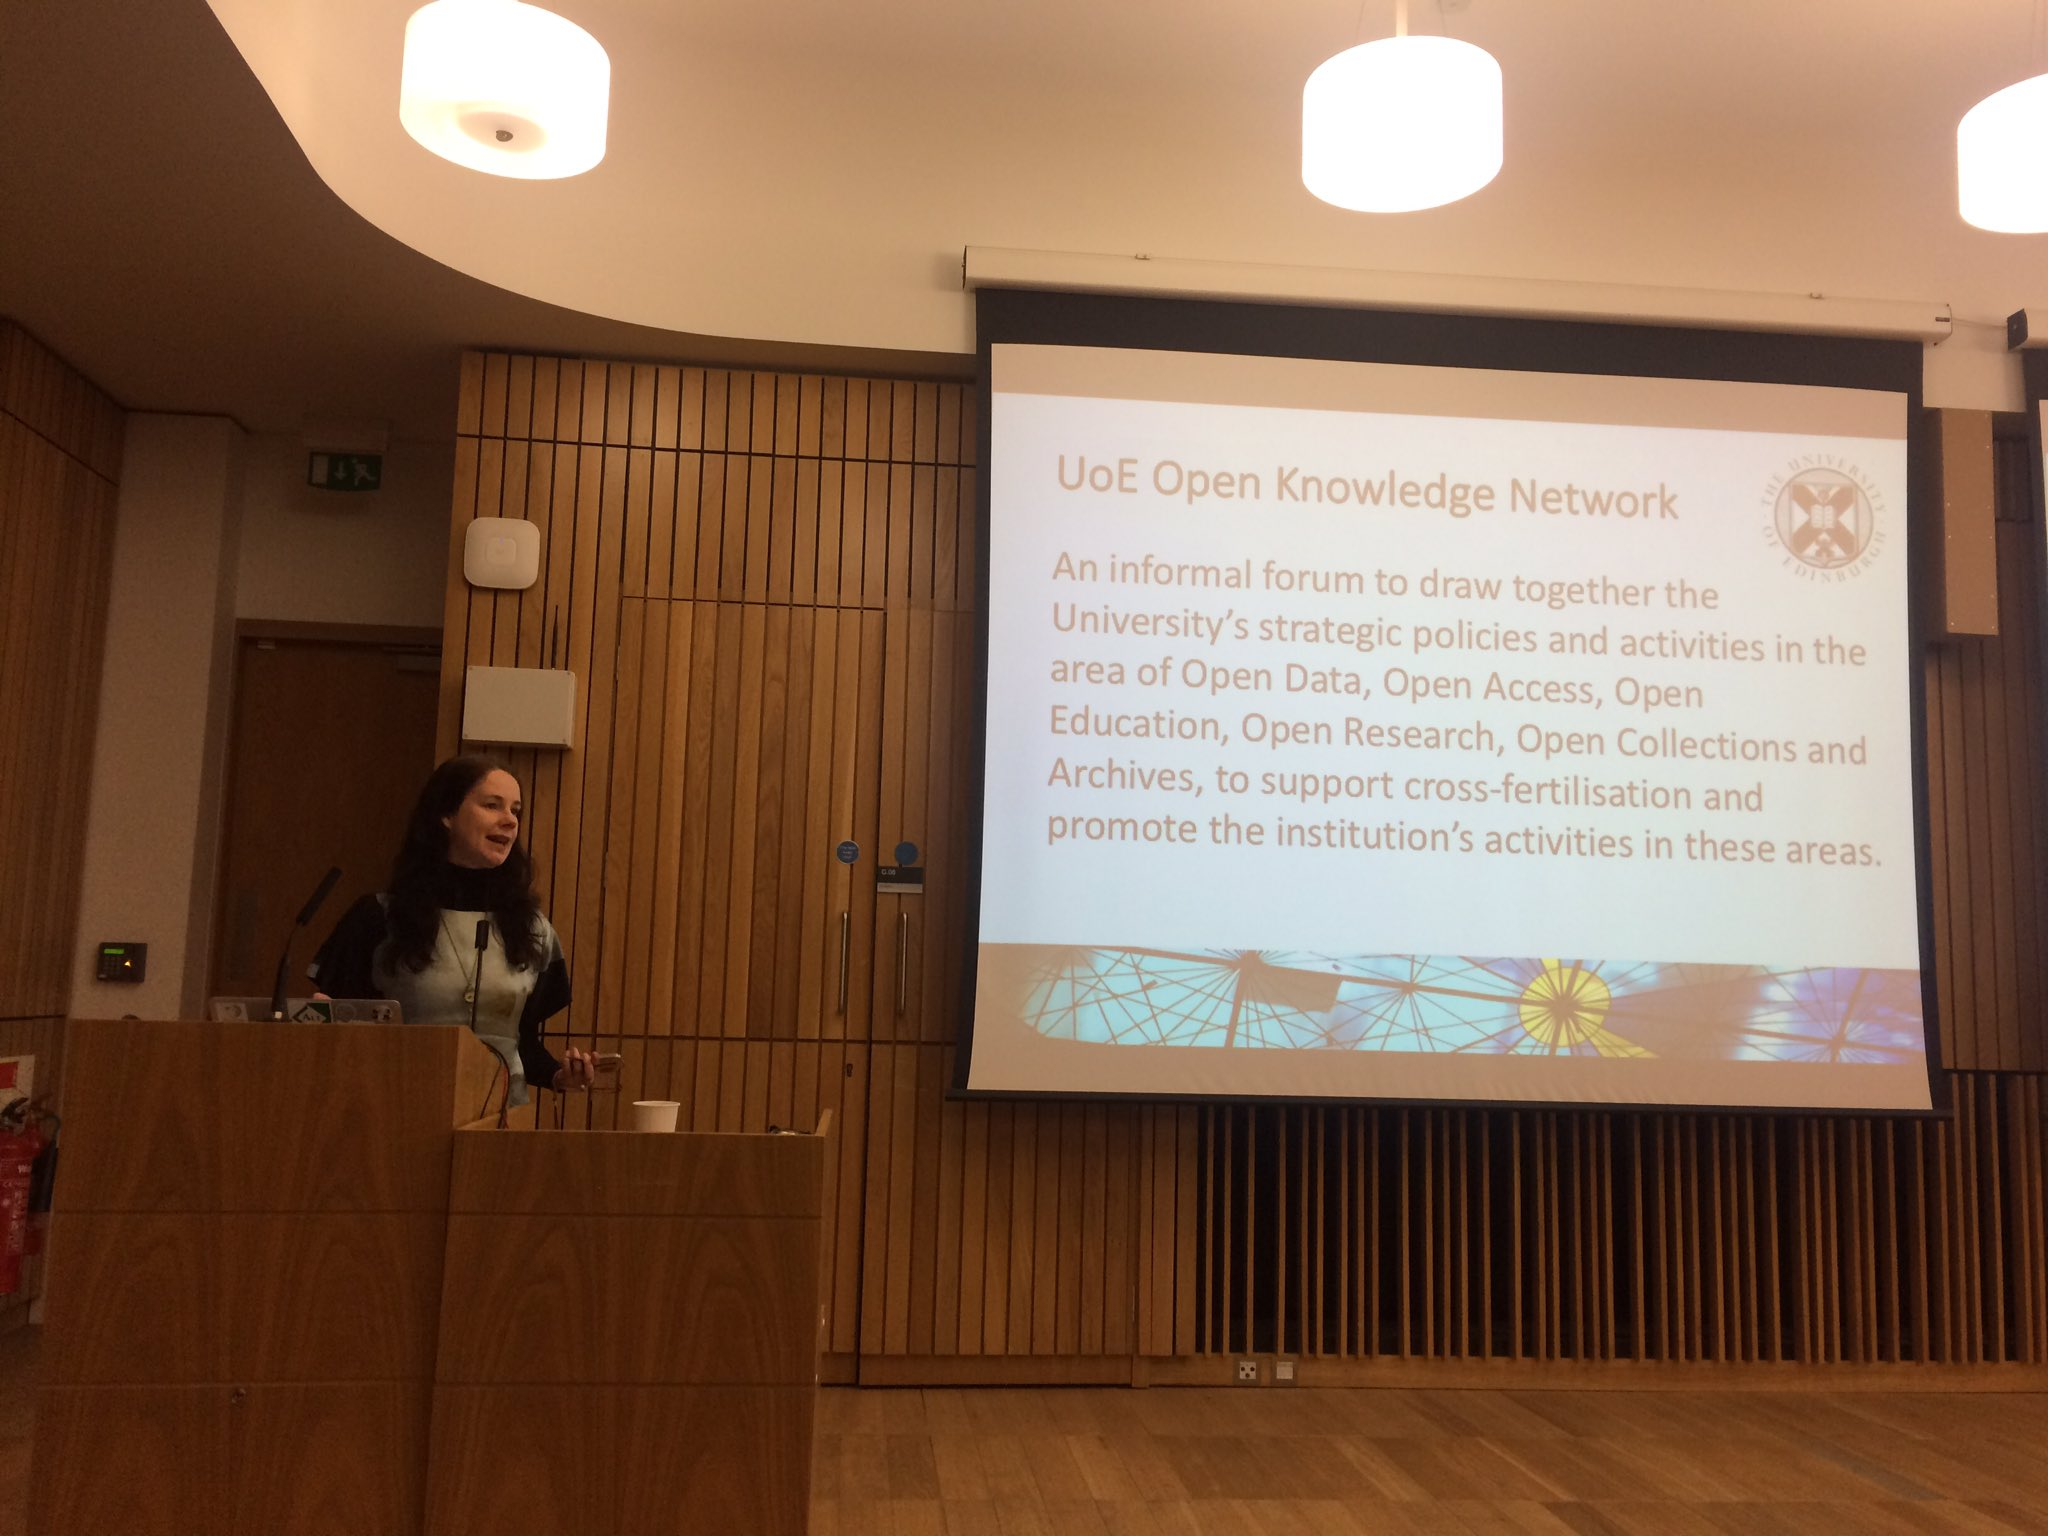 .@LornaMCampbell opens the first Open Knowledge Network event #UoEOKN https://t.co/q4hpWS2sIR